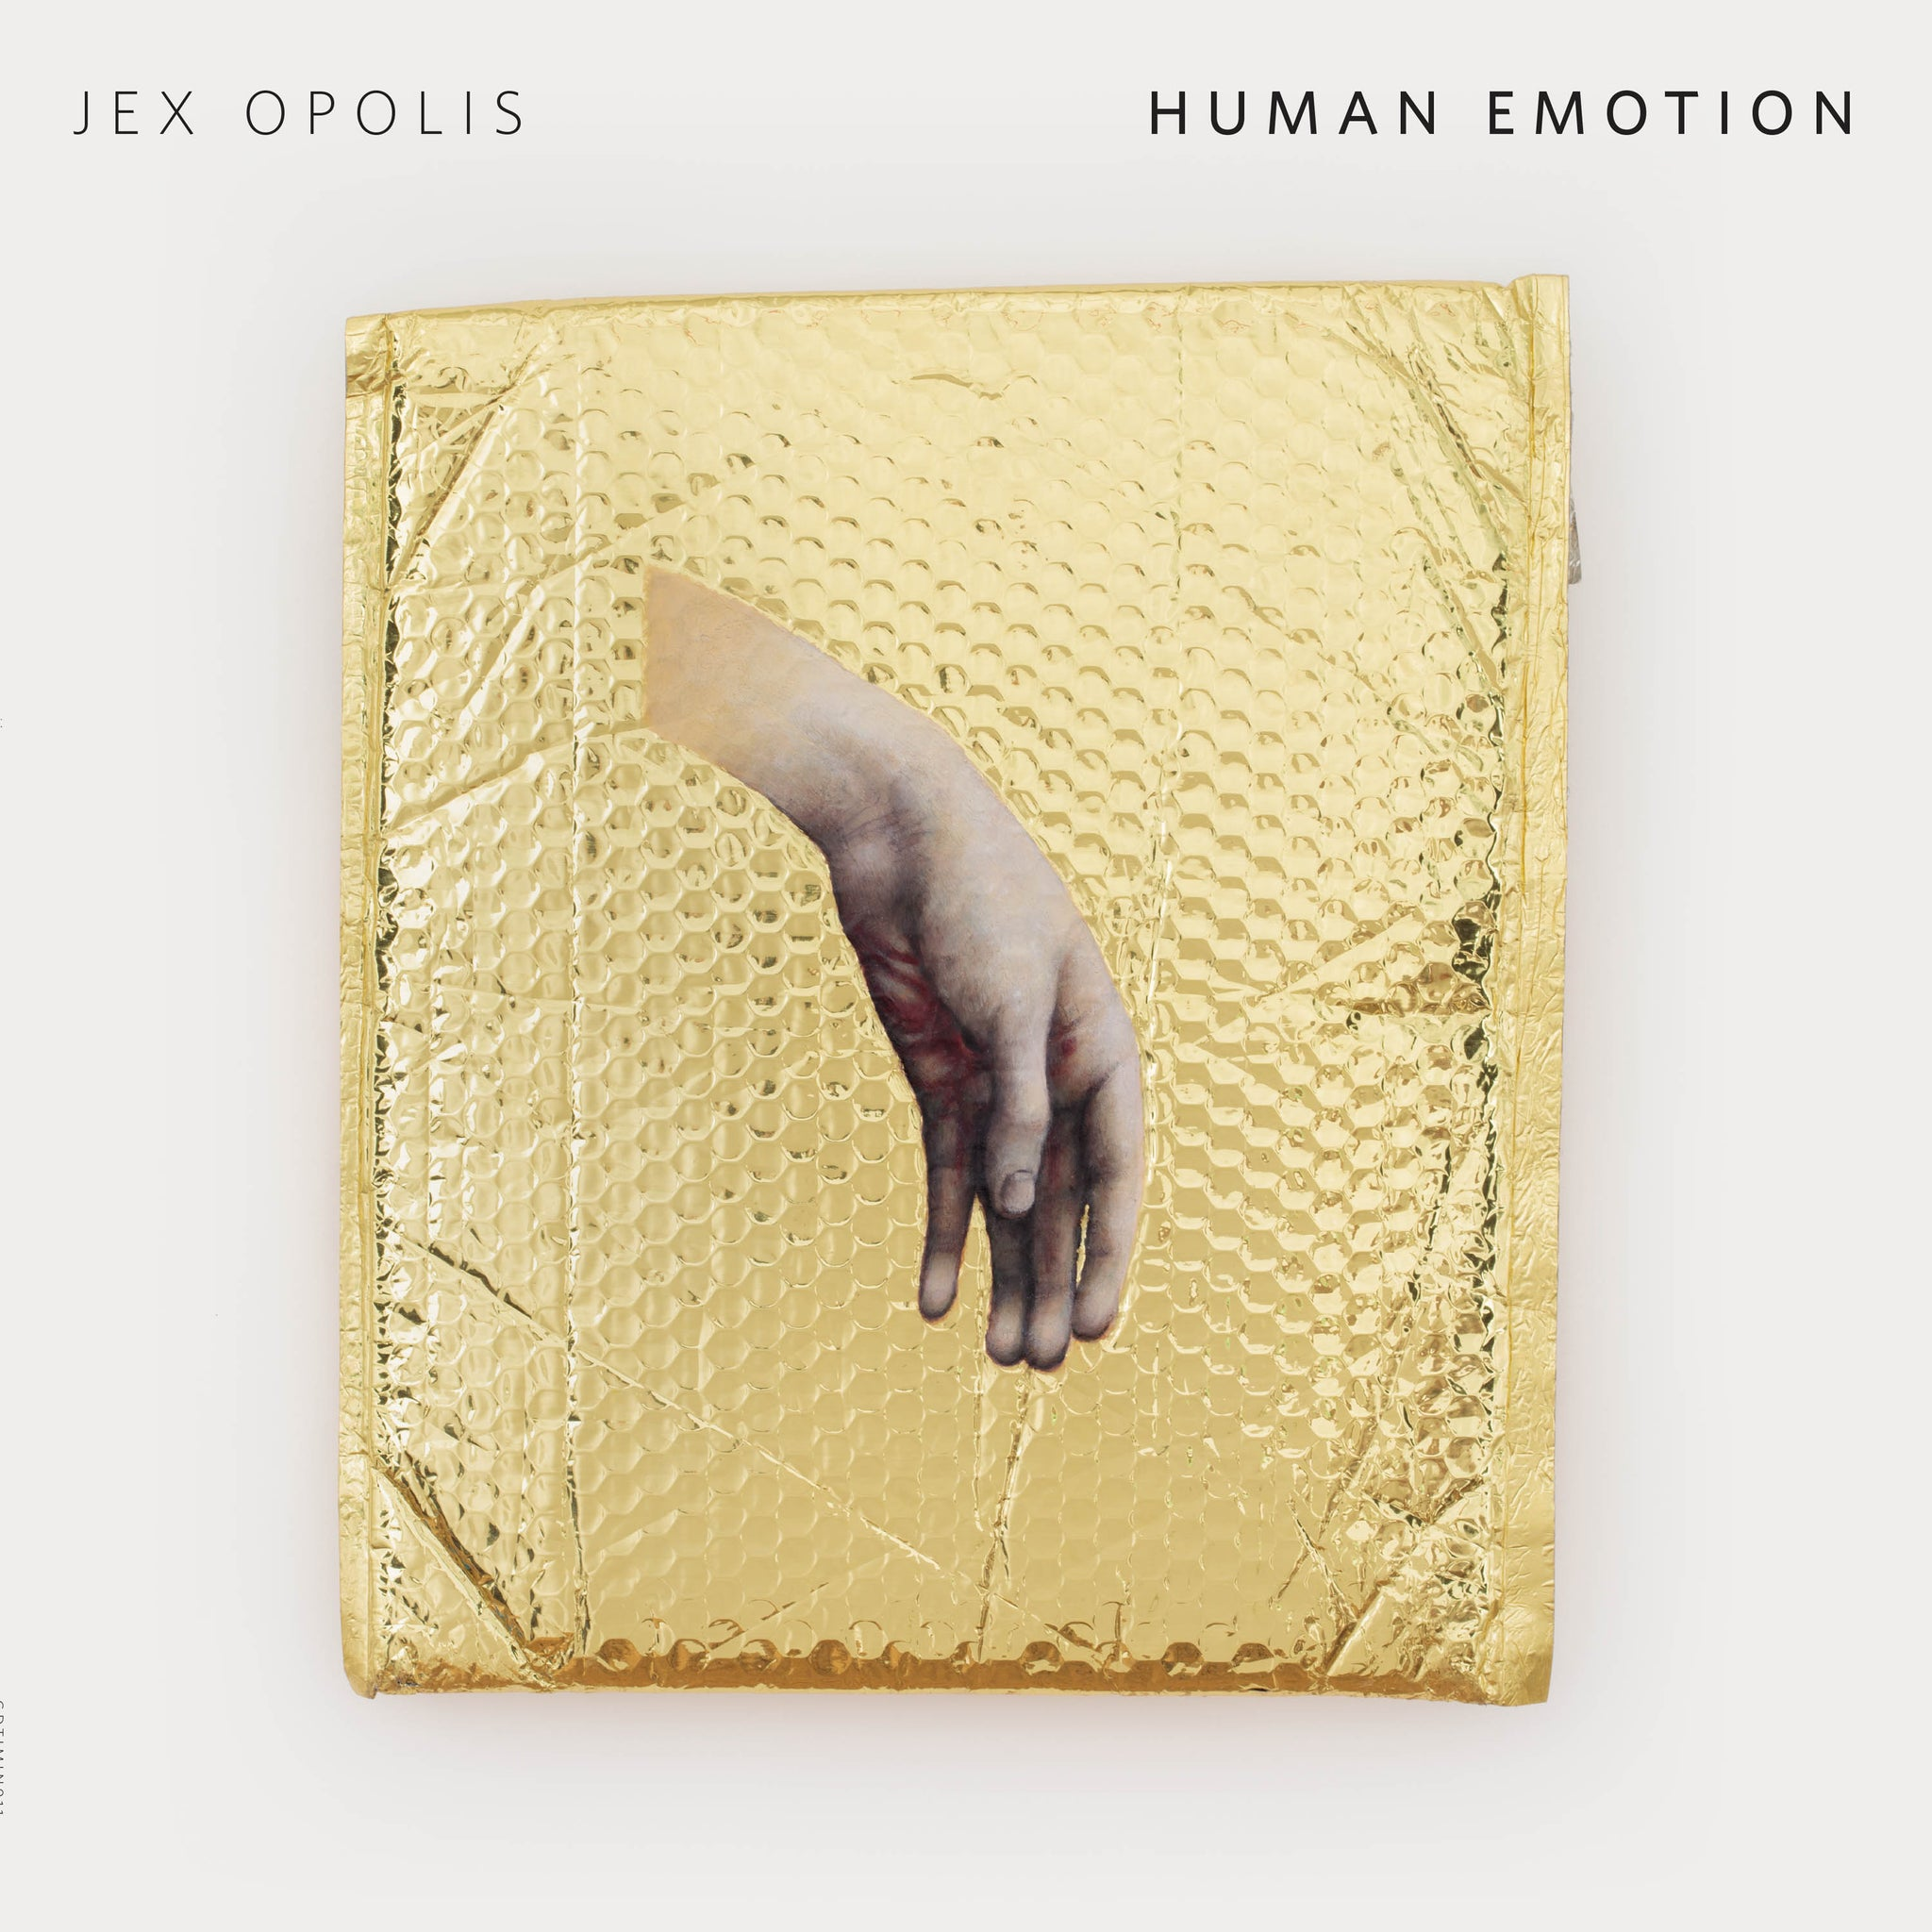 "Jex Opolis - Human Emotion 12"" - Vinylhouse"